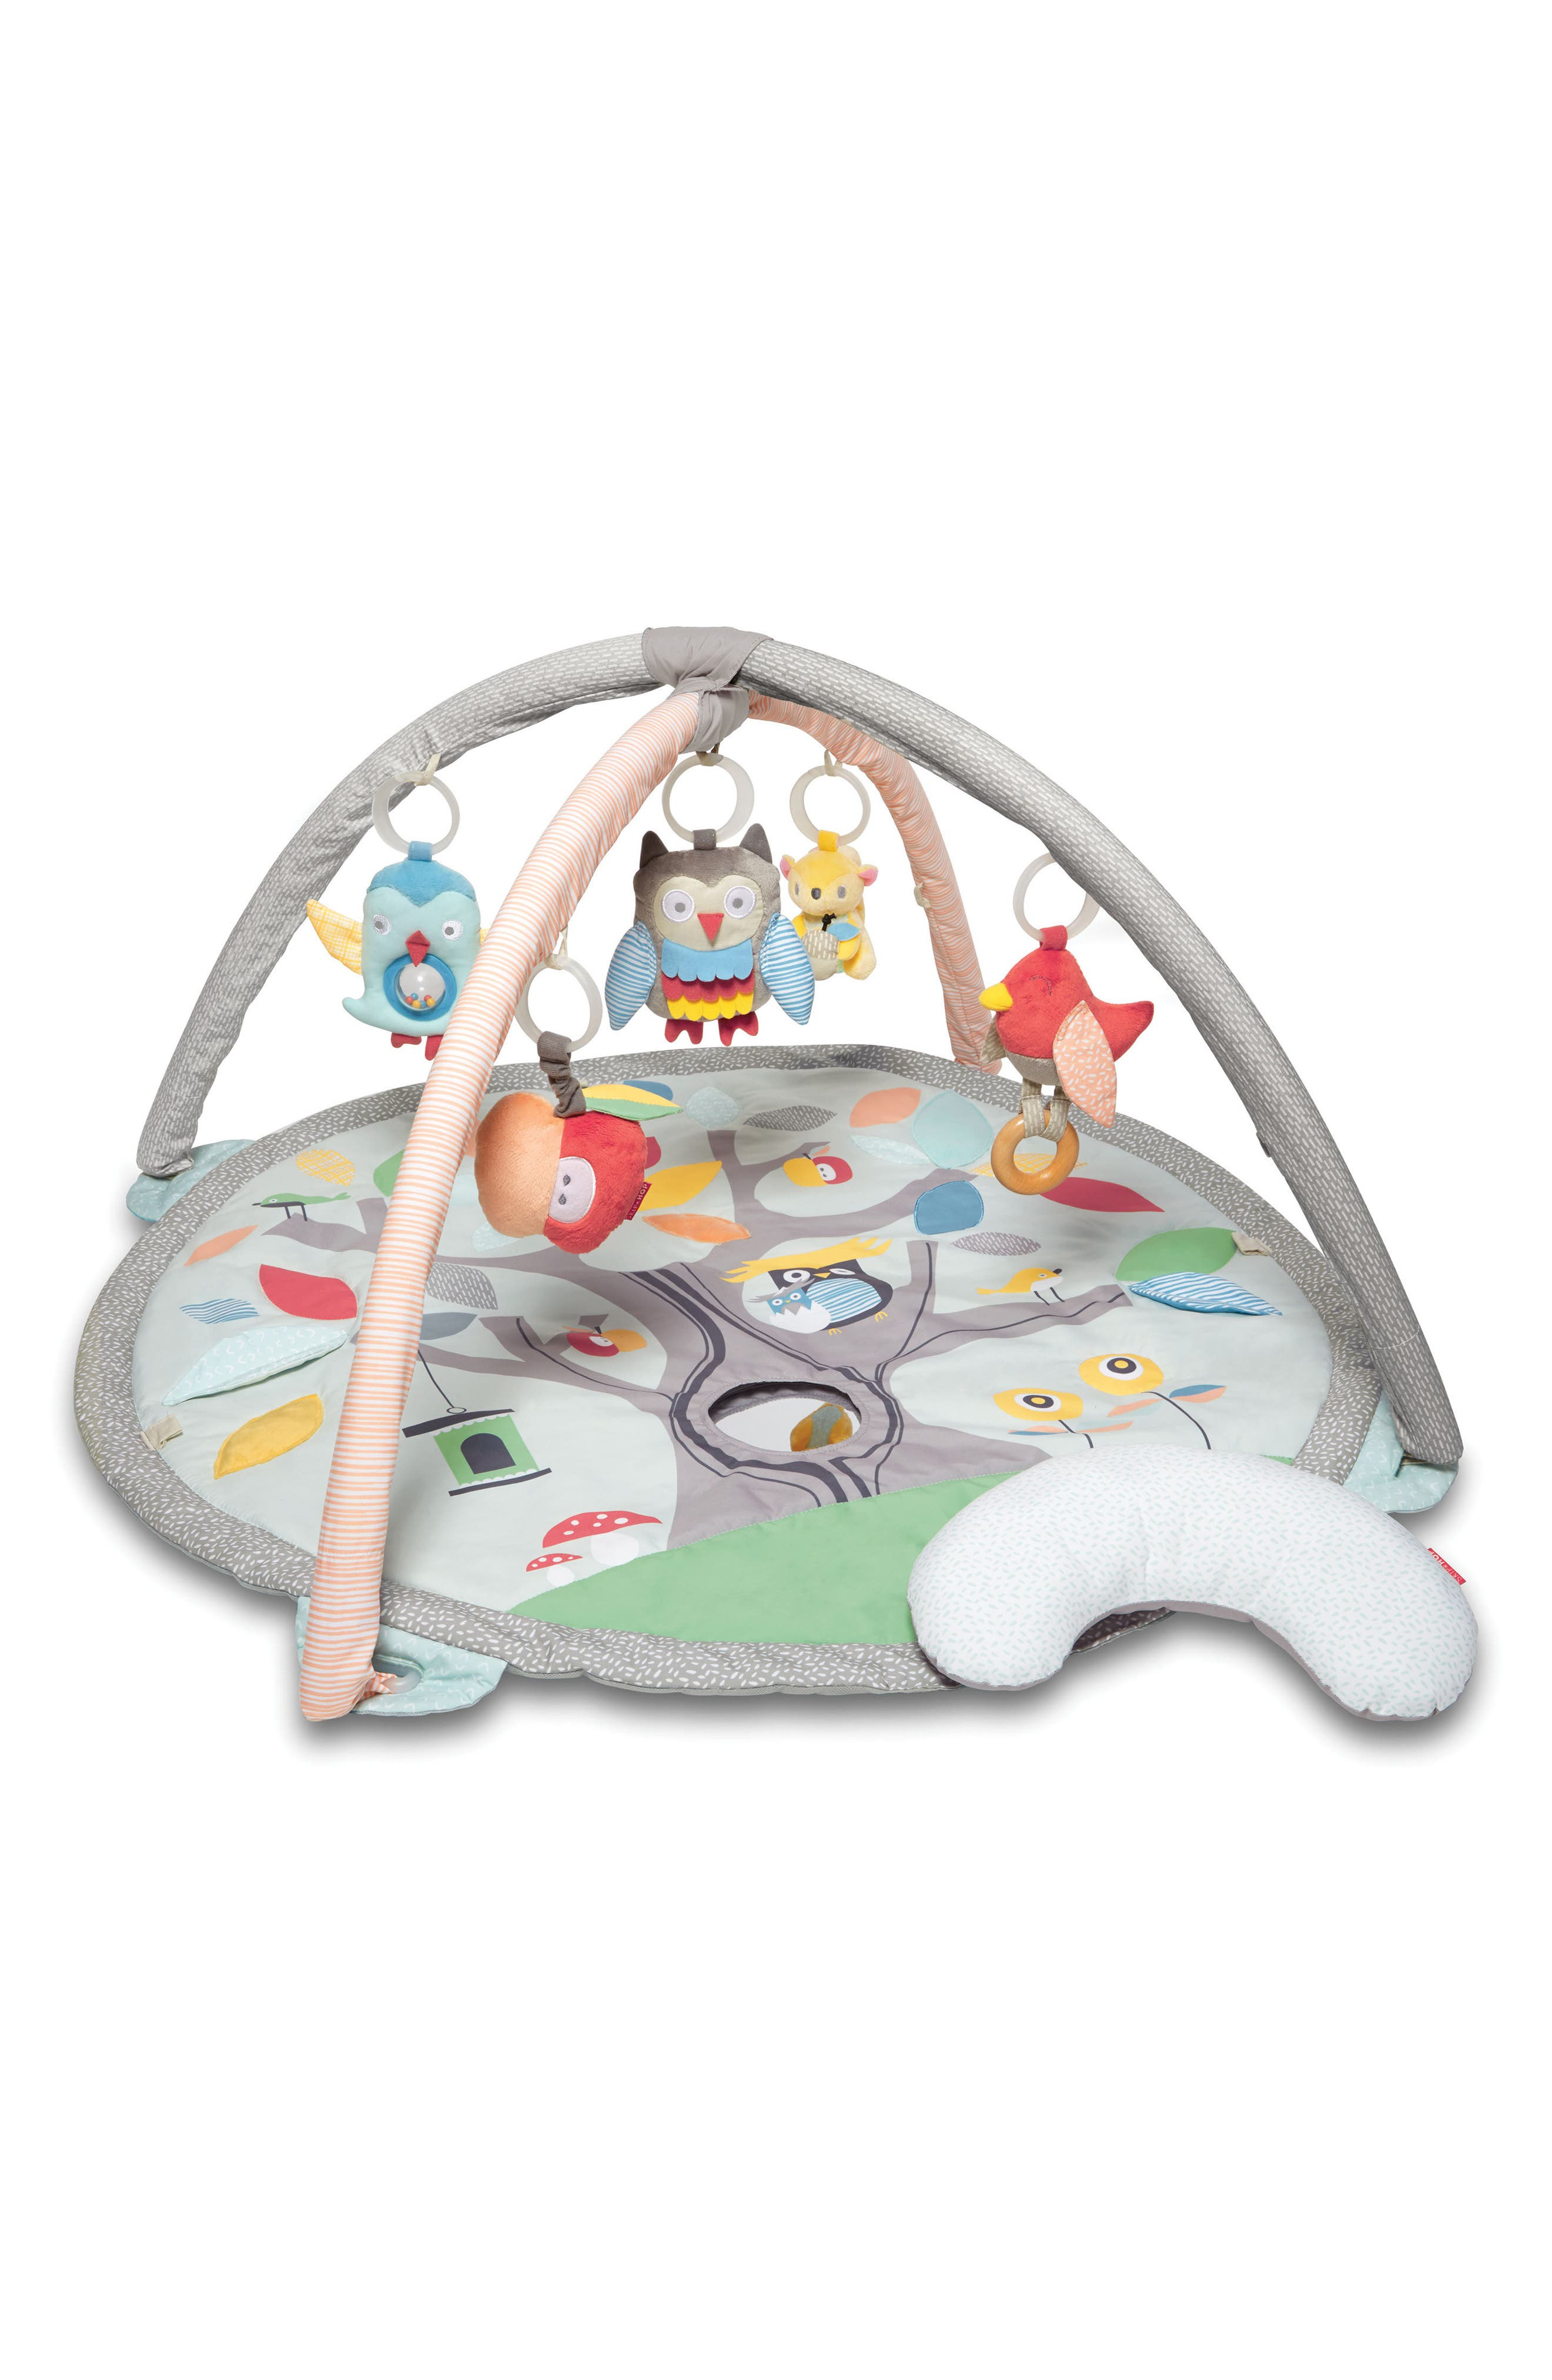 'Treetop Friends' Activity Gym,                         Main,                         color, GREY PASTEL